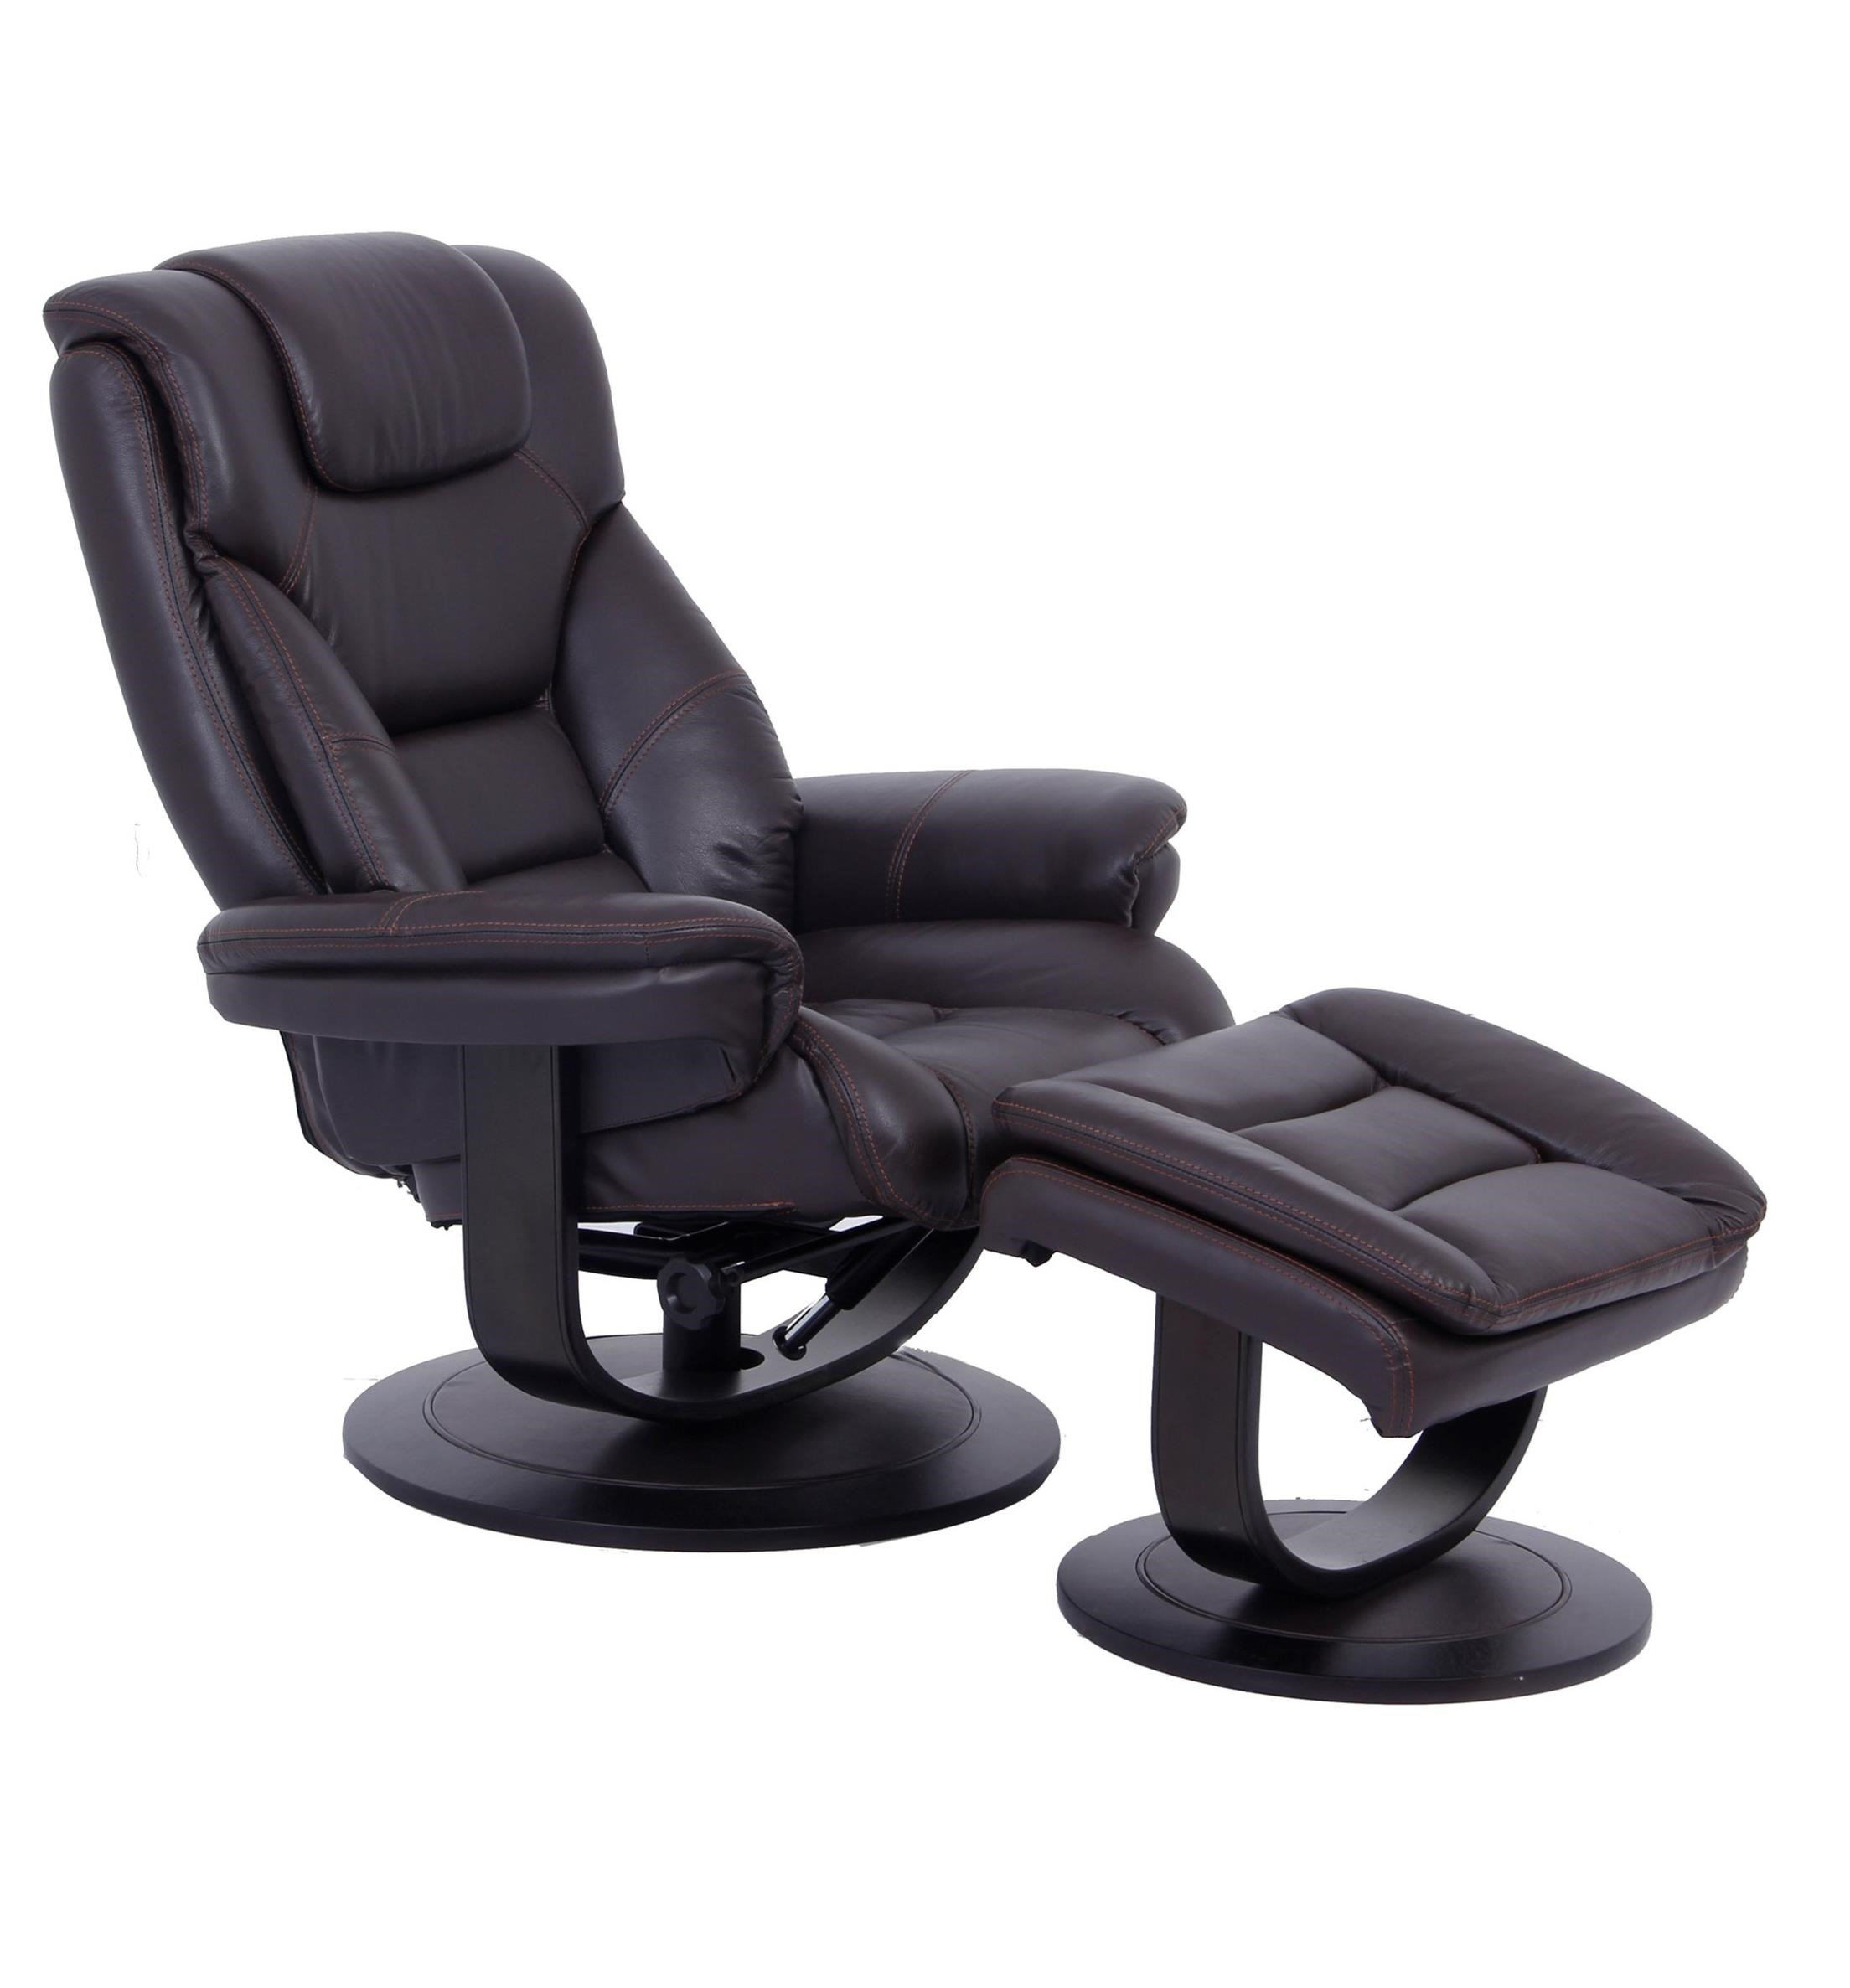 K4 Reclining Chair and Ottoman